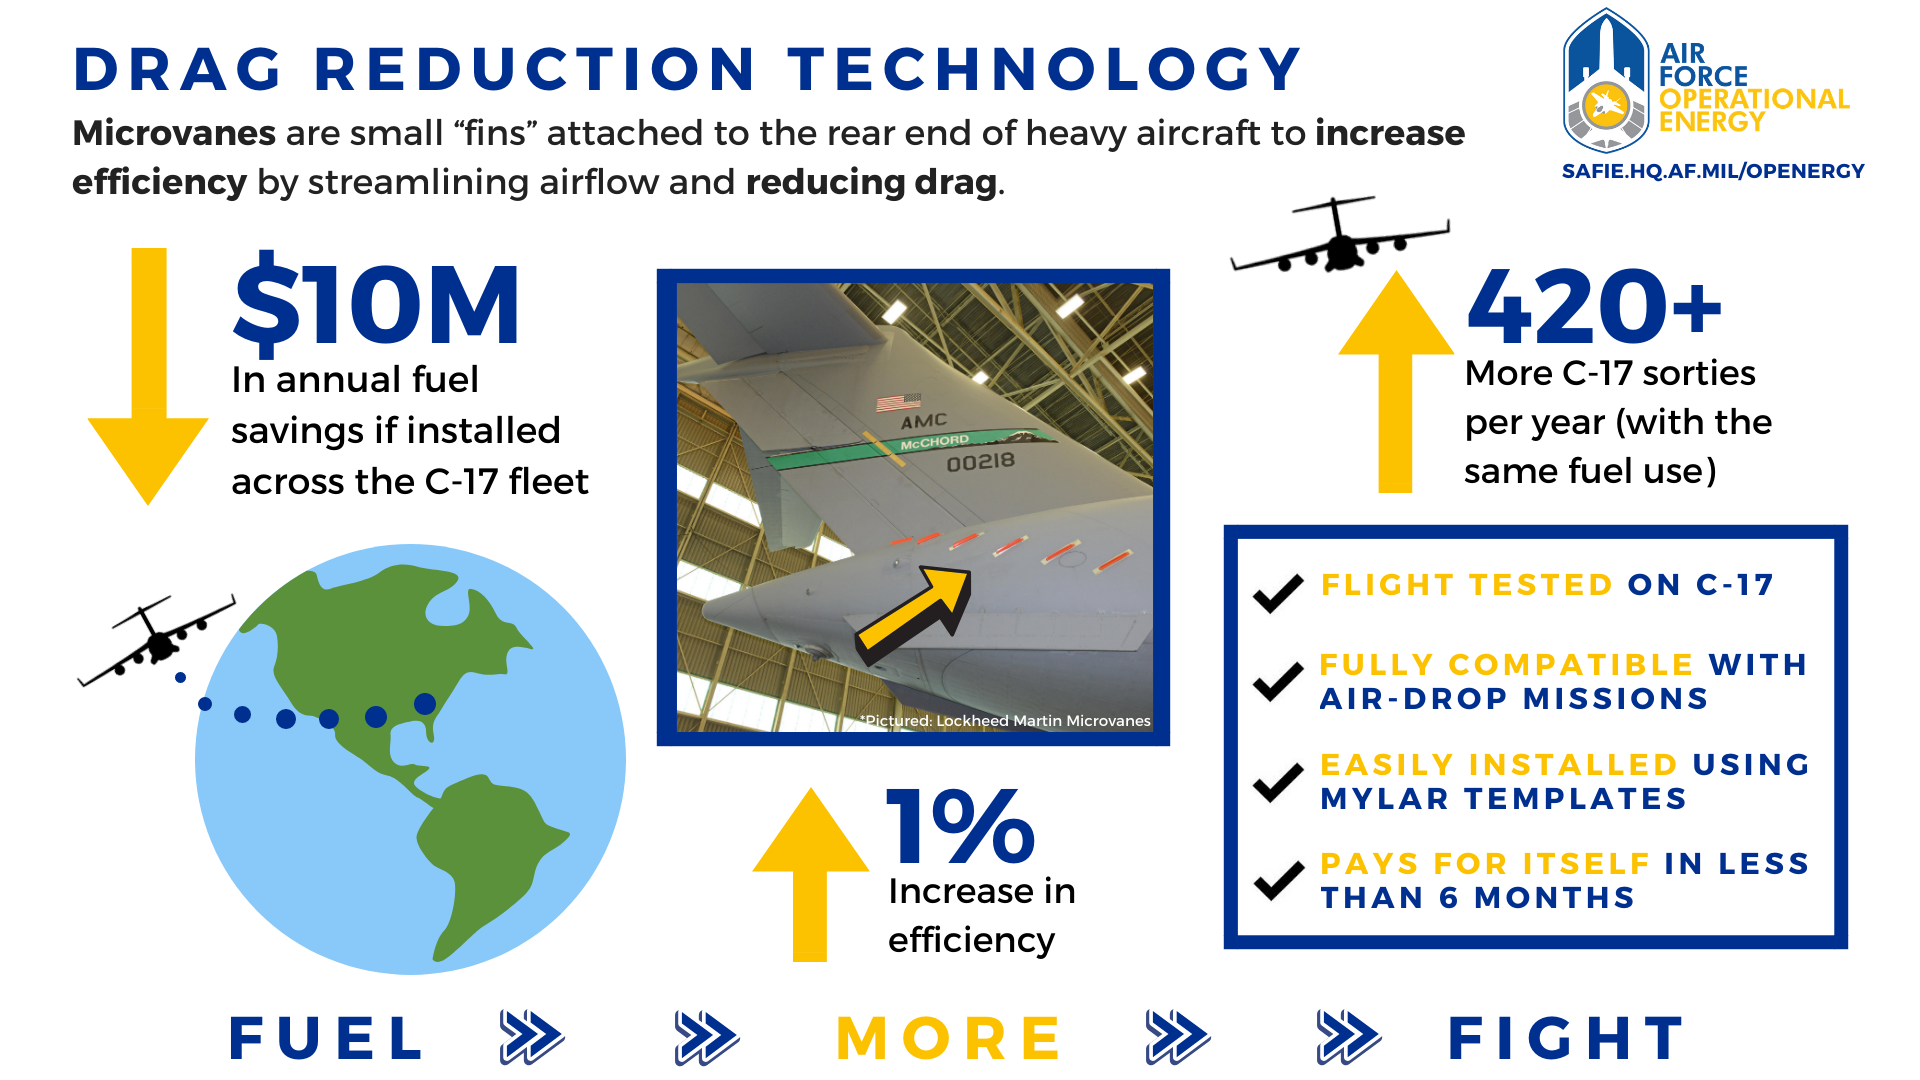 Drag Reduction Technology Graphic